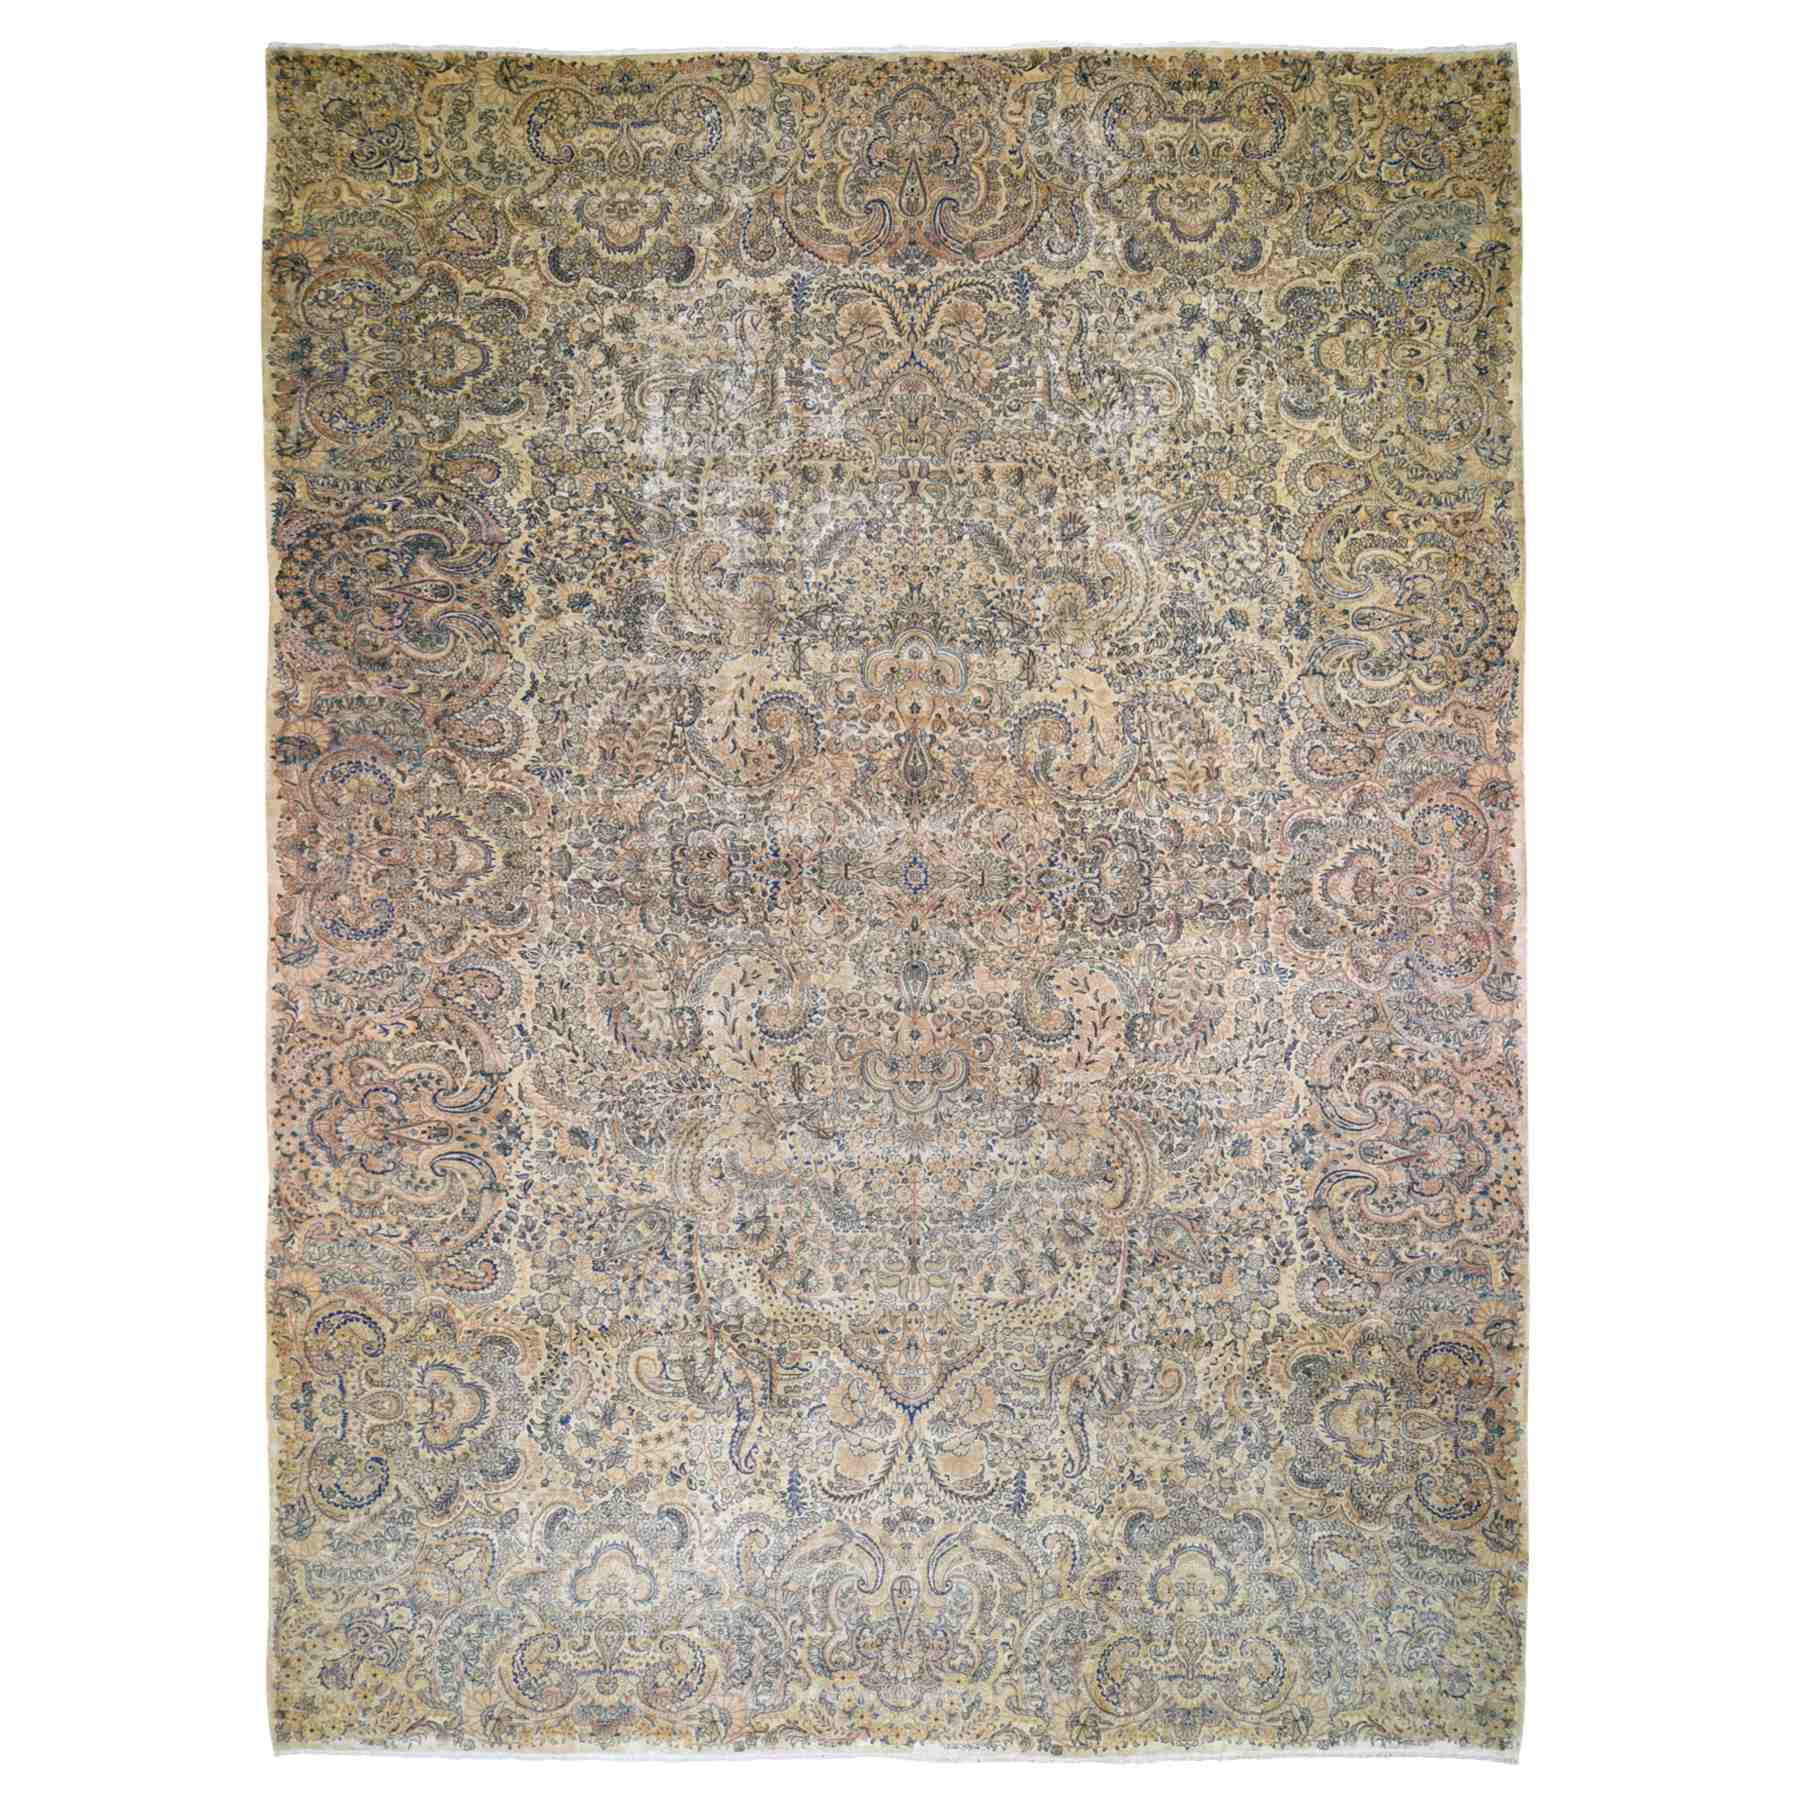 "11'5""x17'8"" Oversized Antique Persian Kerman, Soft Colors, Even Wear Hand Woven Oriental Rug"